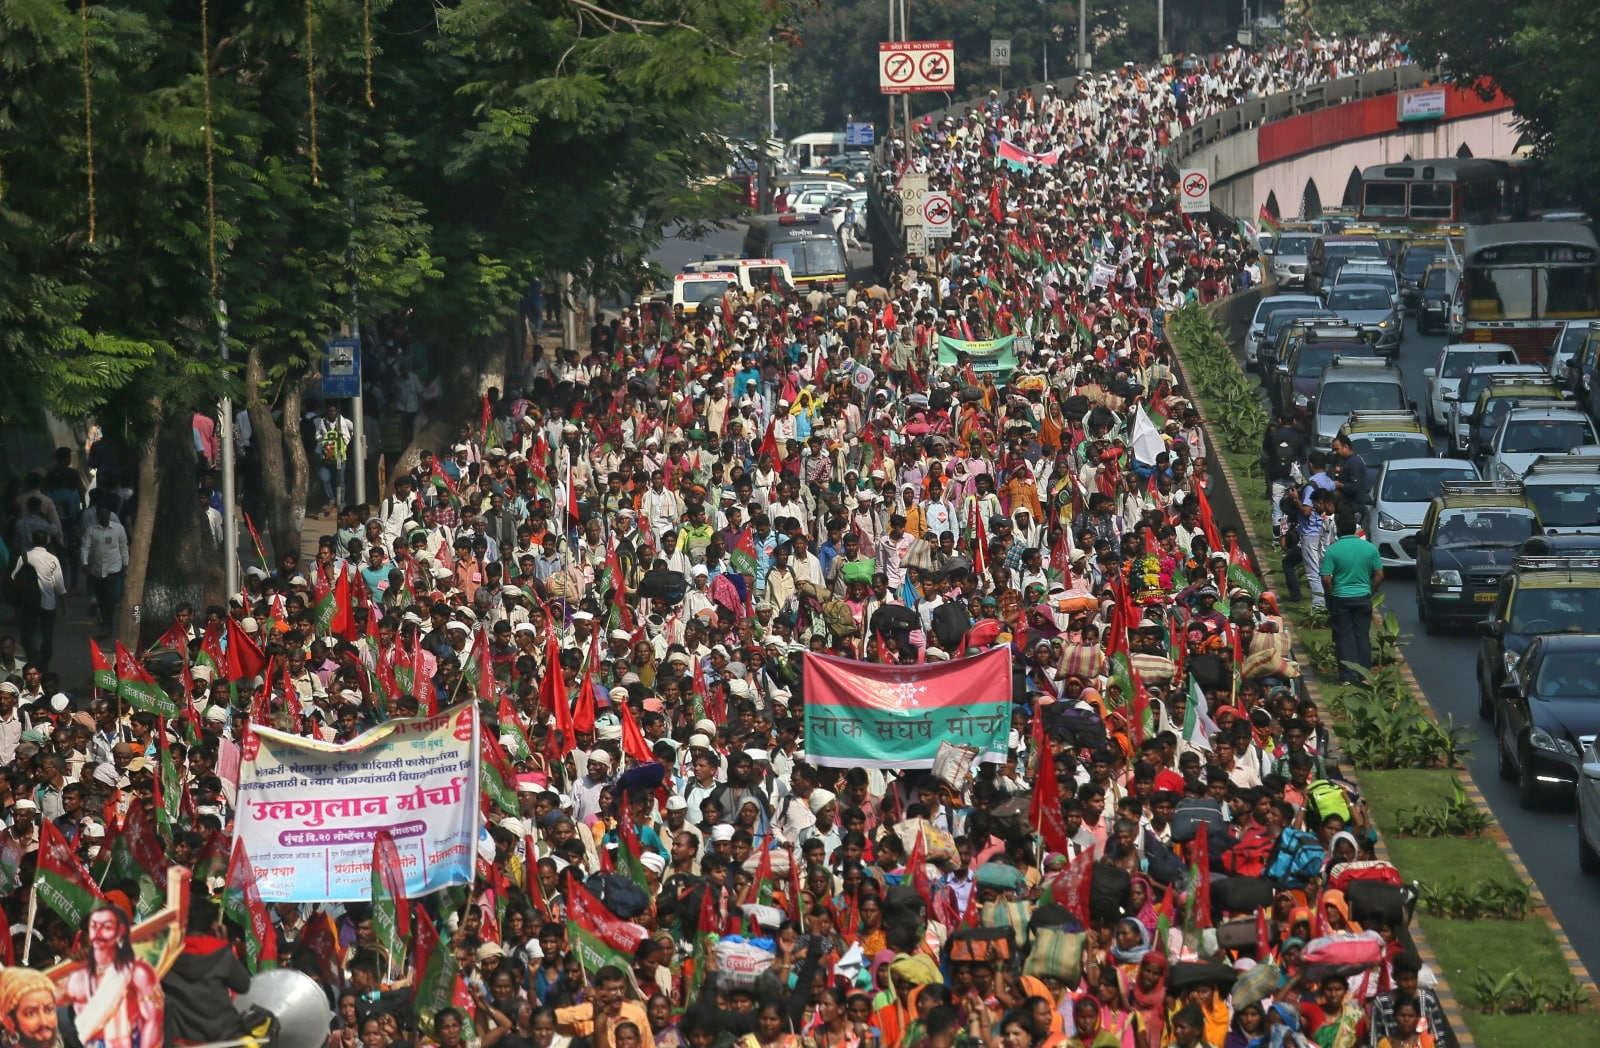 Farmers march on a flyover during a protest rally demanding loan waivers and the transfer of forest lands to villagers who have farmed there for decades, in Mumbai, November 22, 2018. REUTERS/Francis Mascarenhas